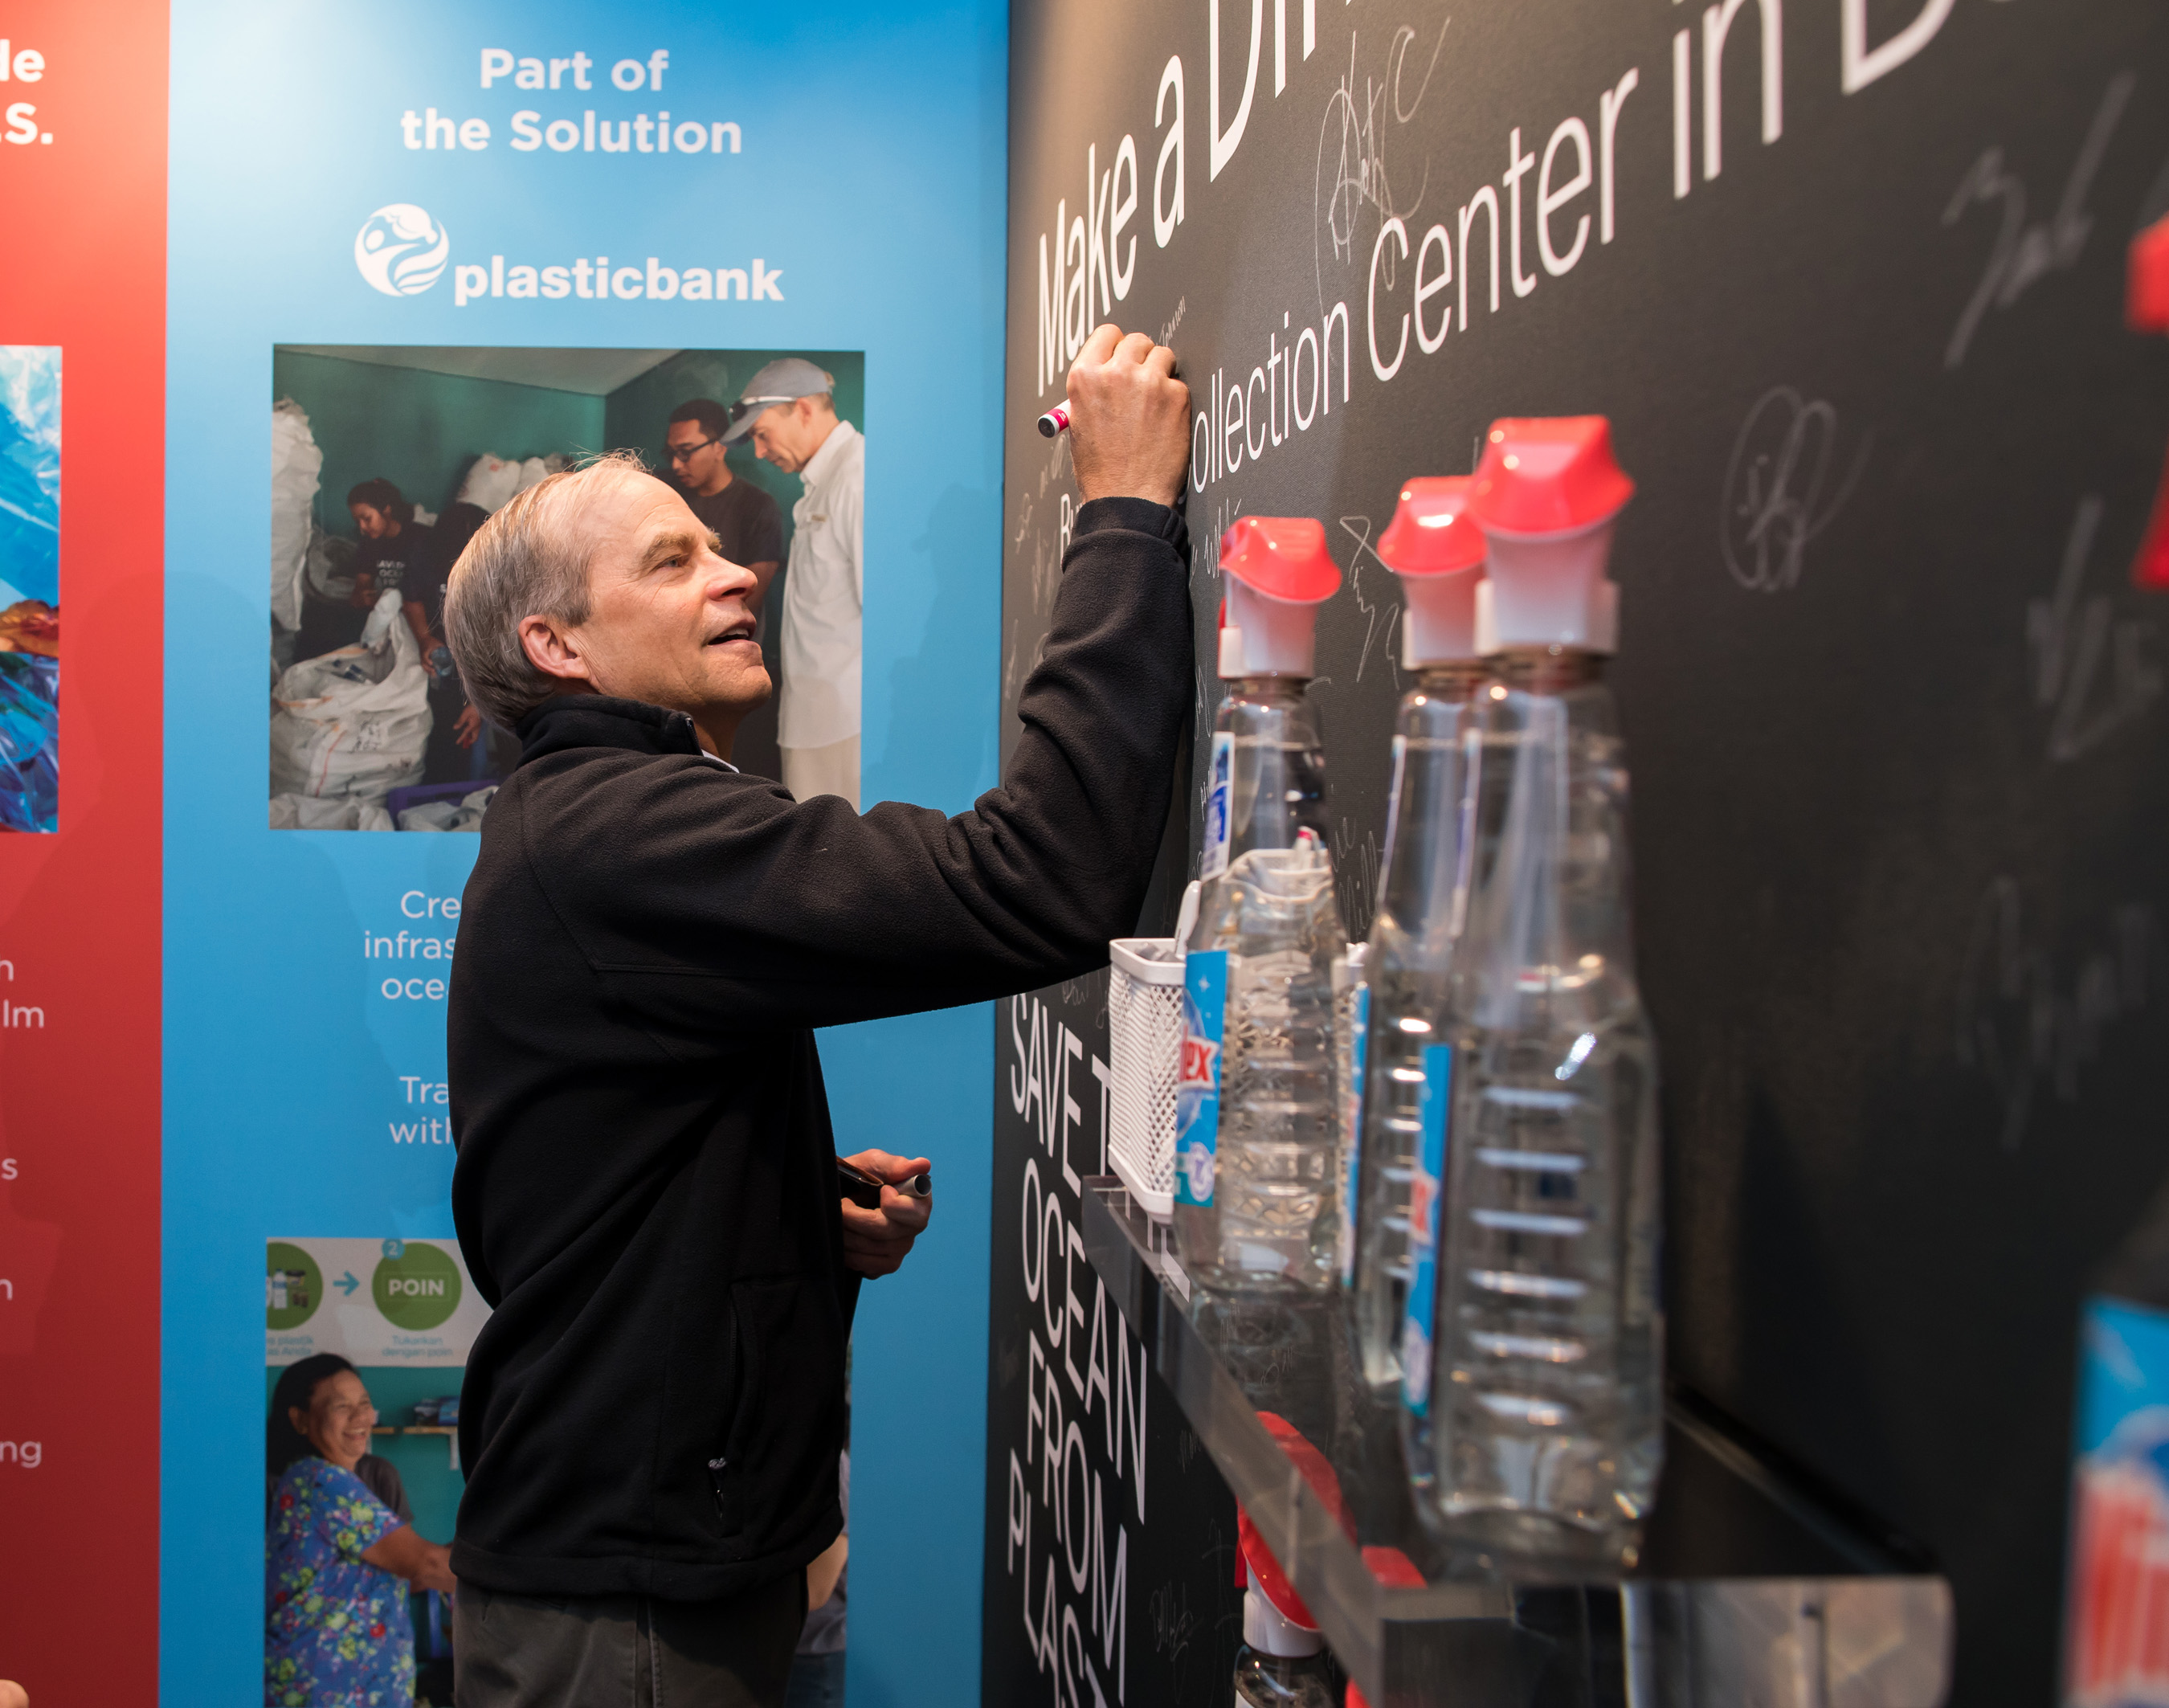 SC Johnson to Launch First-Ever 100% Recycled Ocean Plastic Bottle